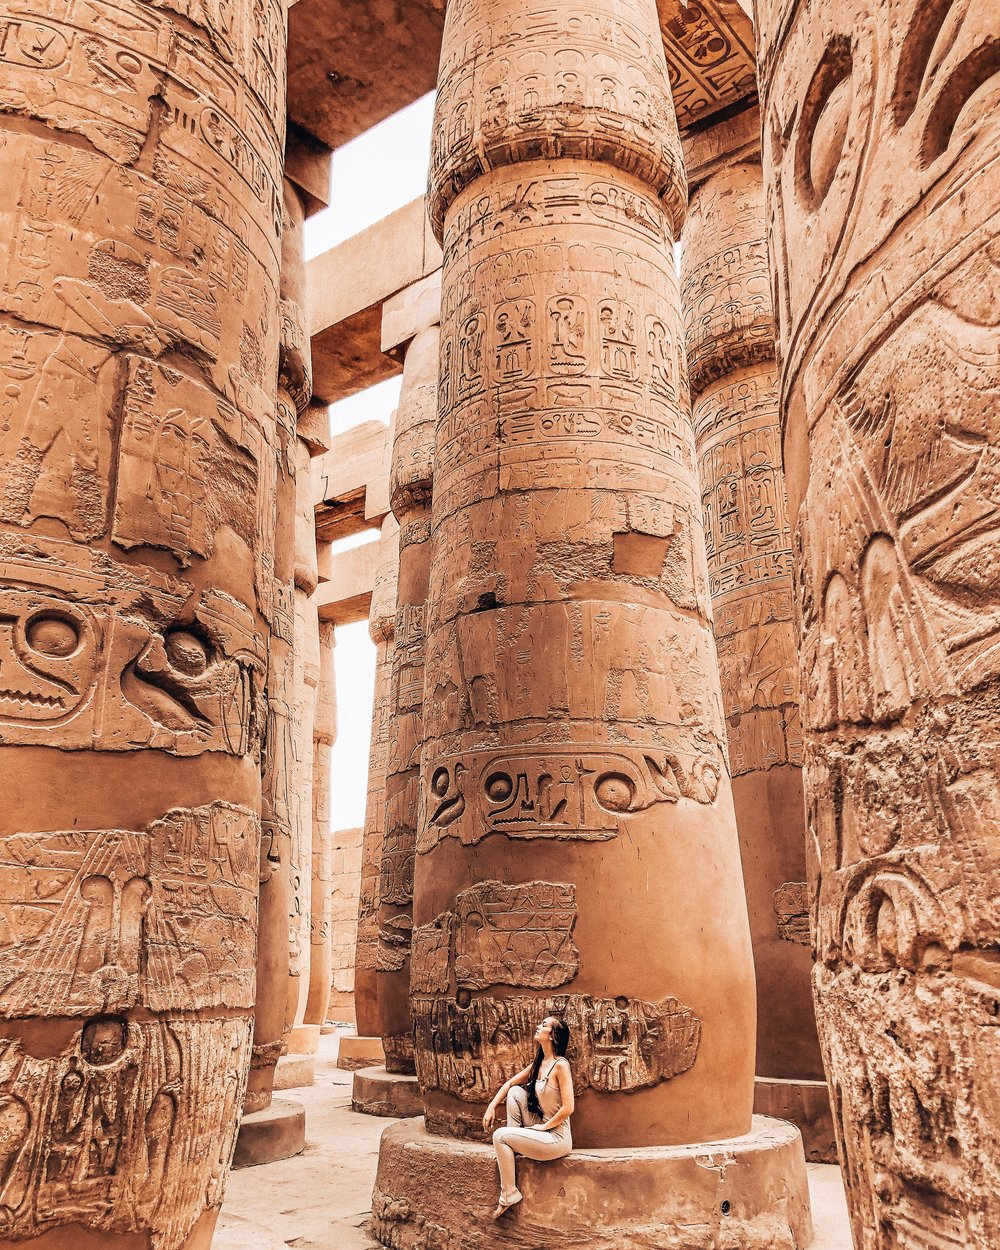 There are 134 columns at Karnak Temple. 122 of them are 10 meters tall, and 12 of them are 21 meters tall.